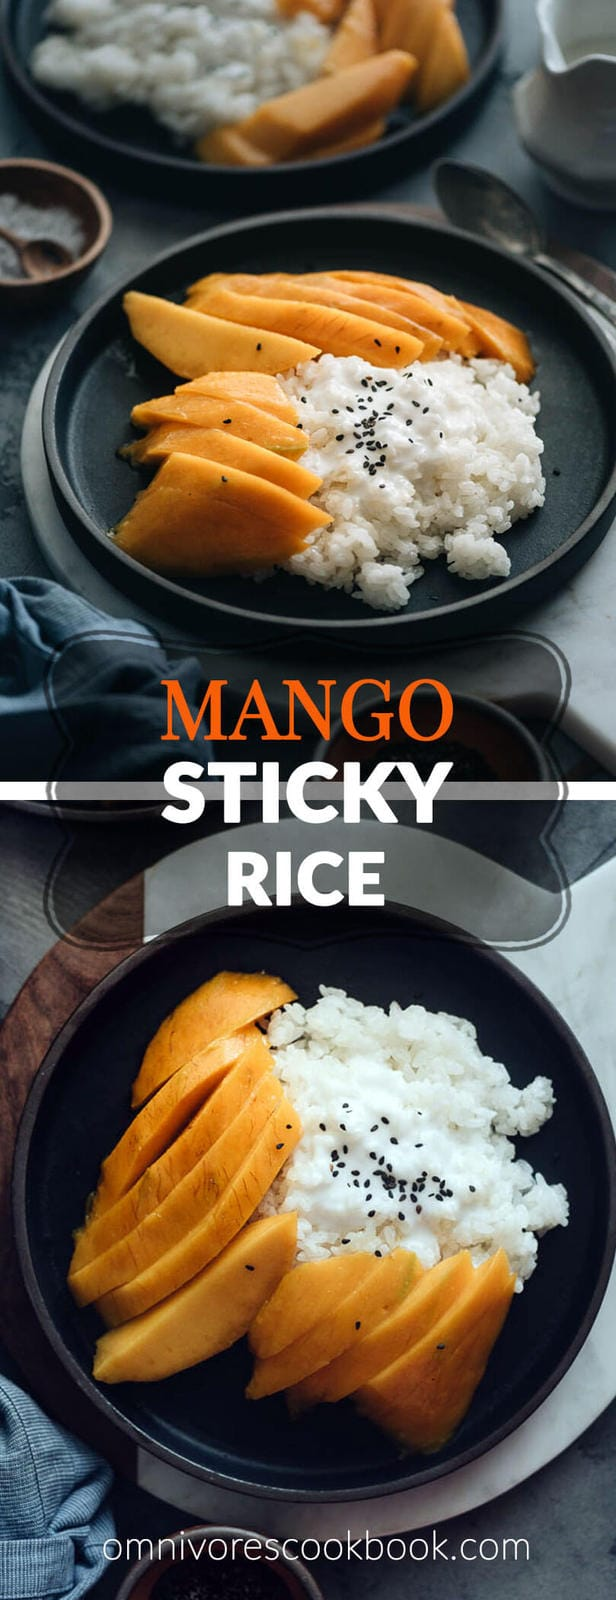 Mango Sticky Rice - The sweet gooey, nutty sticky rice is served with lucious coconut cream and sliced mango. It's so refreshing and comforting. This low-sugar version is not only easy to prepare, but also much healthier. #glutenfree #vegan #vegetarian